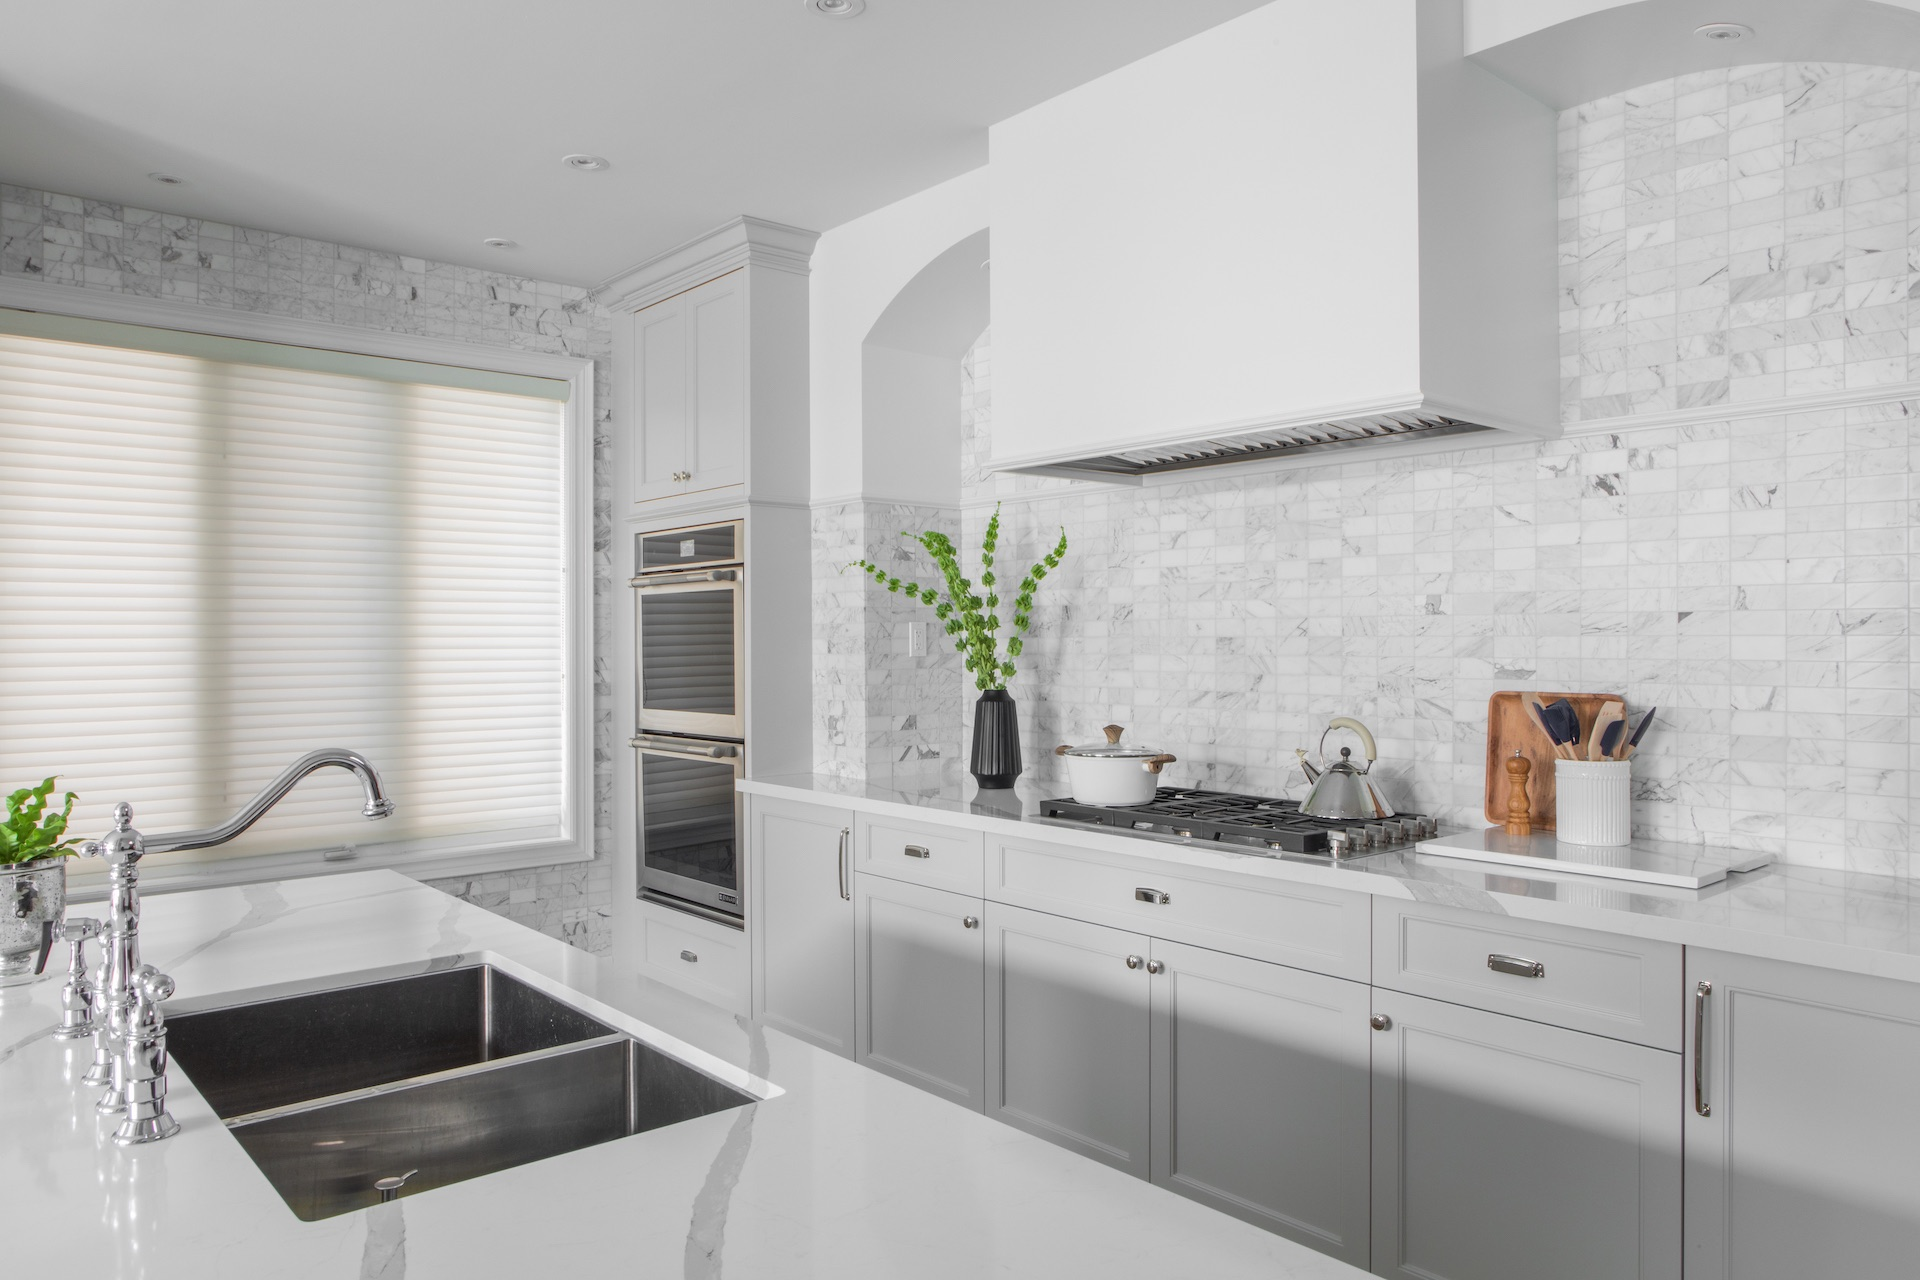 white kitchen with sink and stove